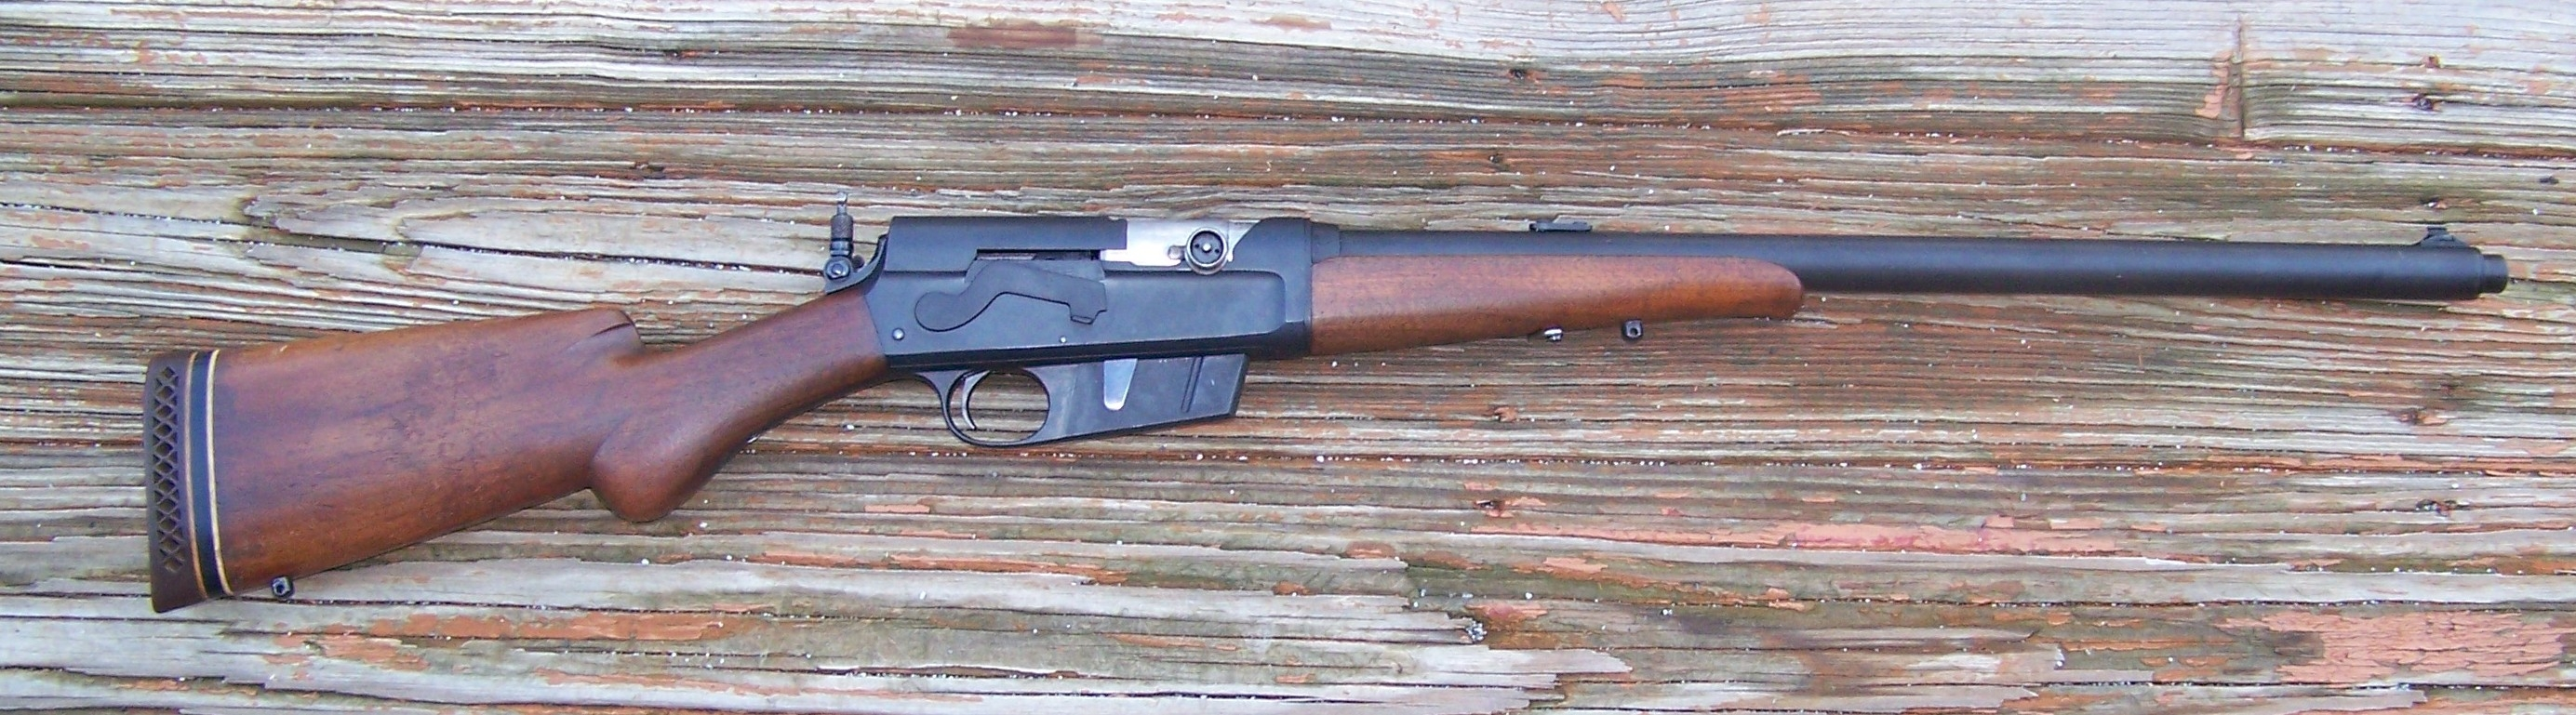 The Remington Model 8 is a rifle with many good features and a timeless  quality.